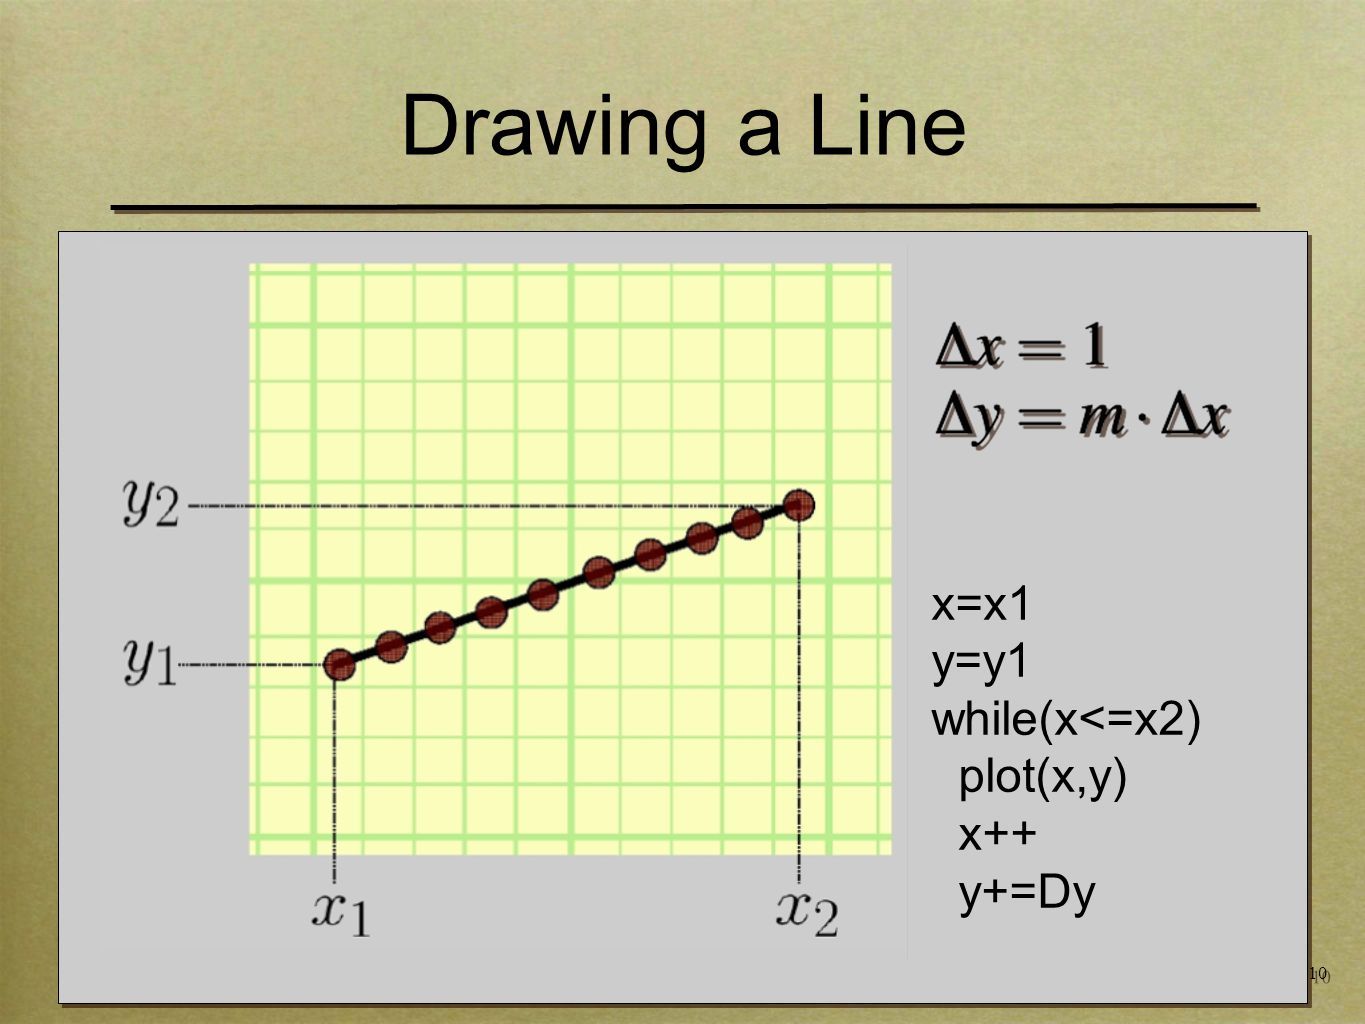 10 Drawing a Line x=x1 y=y1 while(x<=x2) plot(x,y) x++ y+=Dy